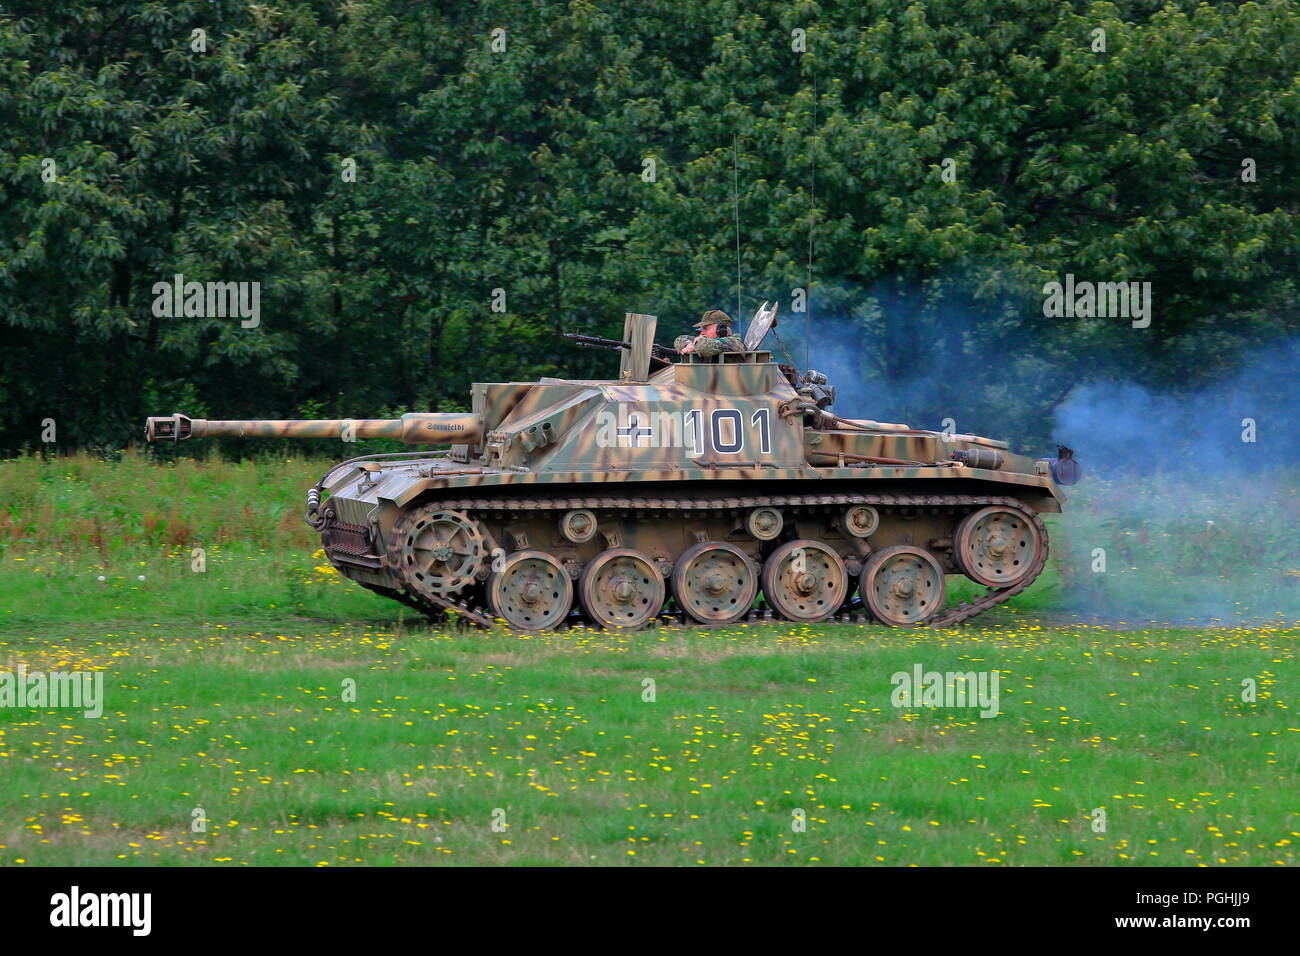 A wartime German tank doing manoeuvers in the display area of Detling showground during a battle re enactment. - Stock Image